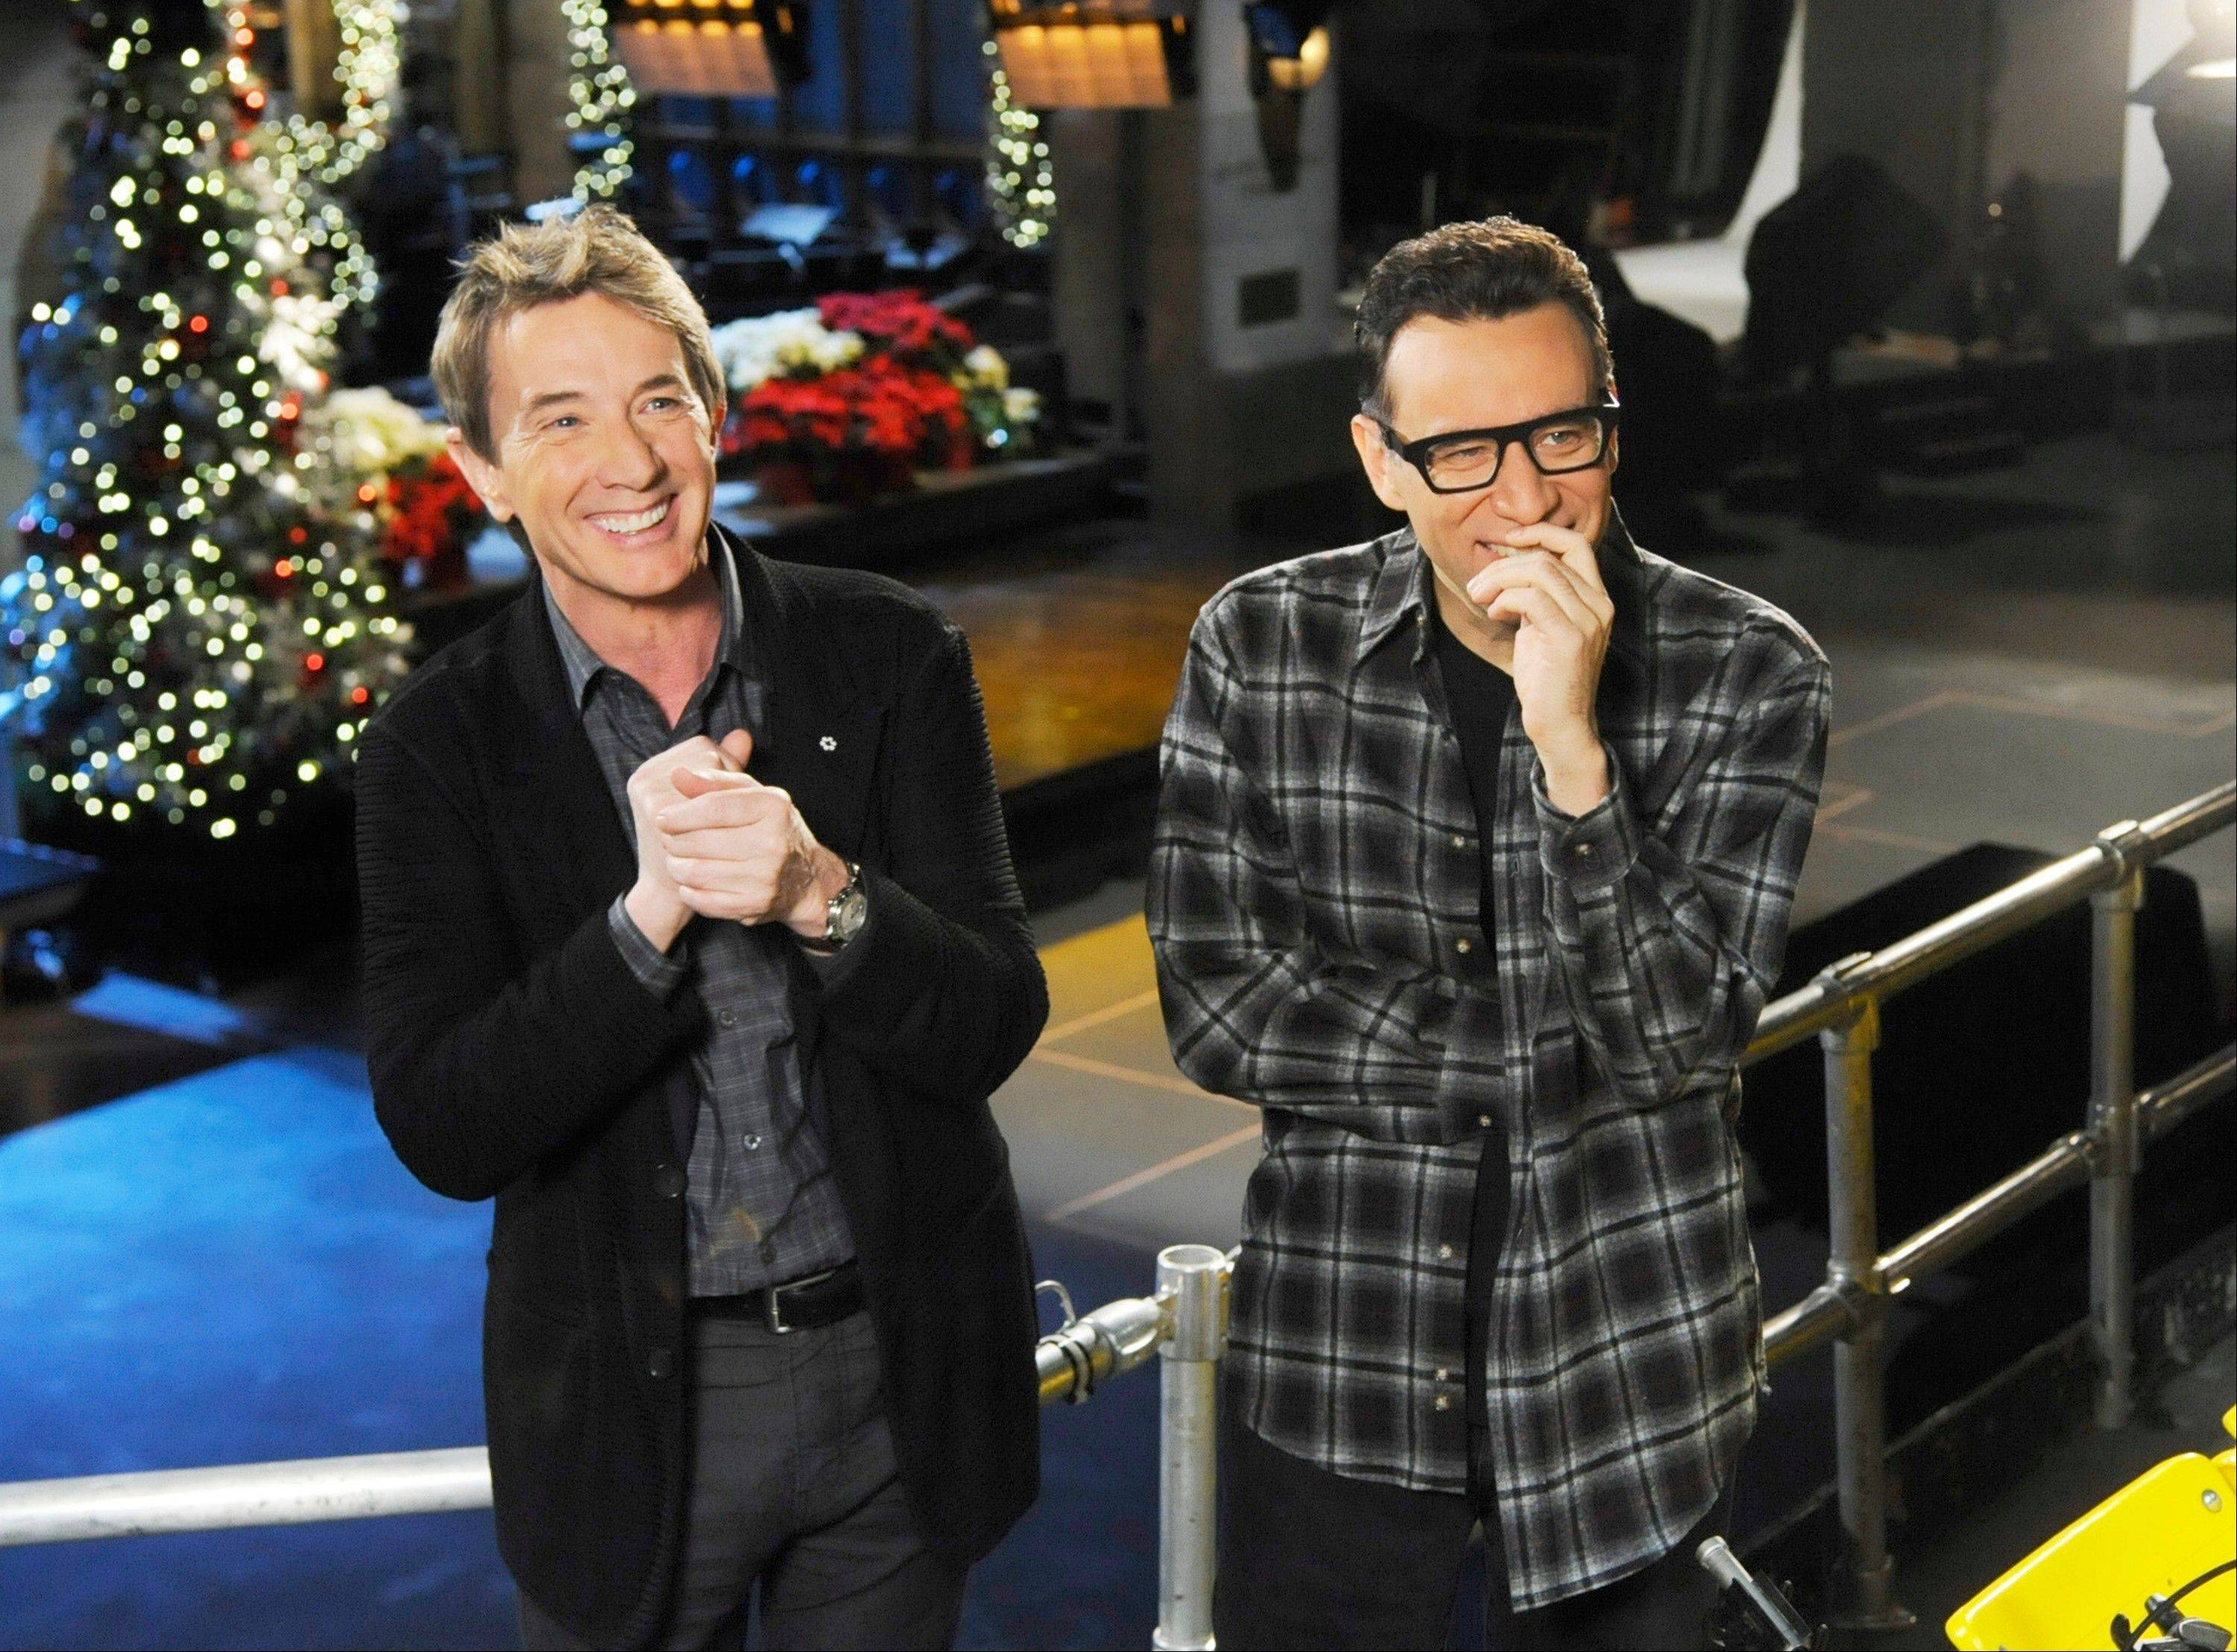 Martin Short, left, with cast member Fred Armisen on the set of �Saturday Night Live,� in New York. Short will guest host on the popular late-night program along with musical guest Paul McCartney.